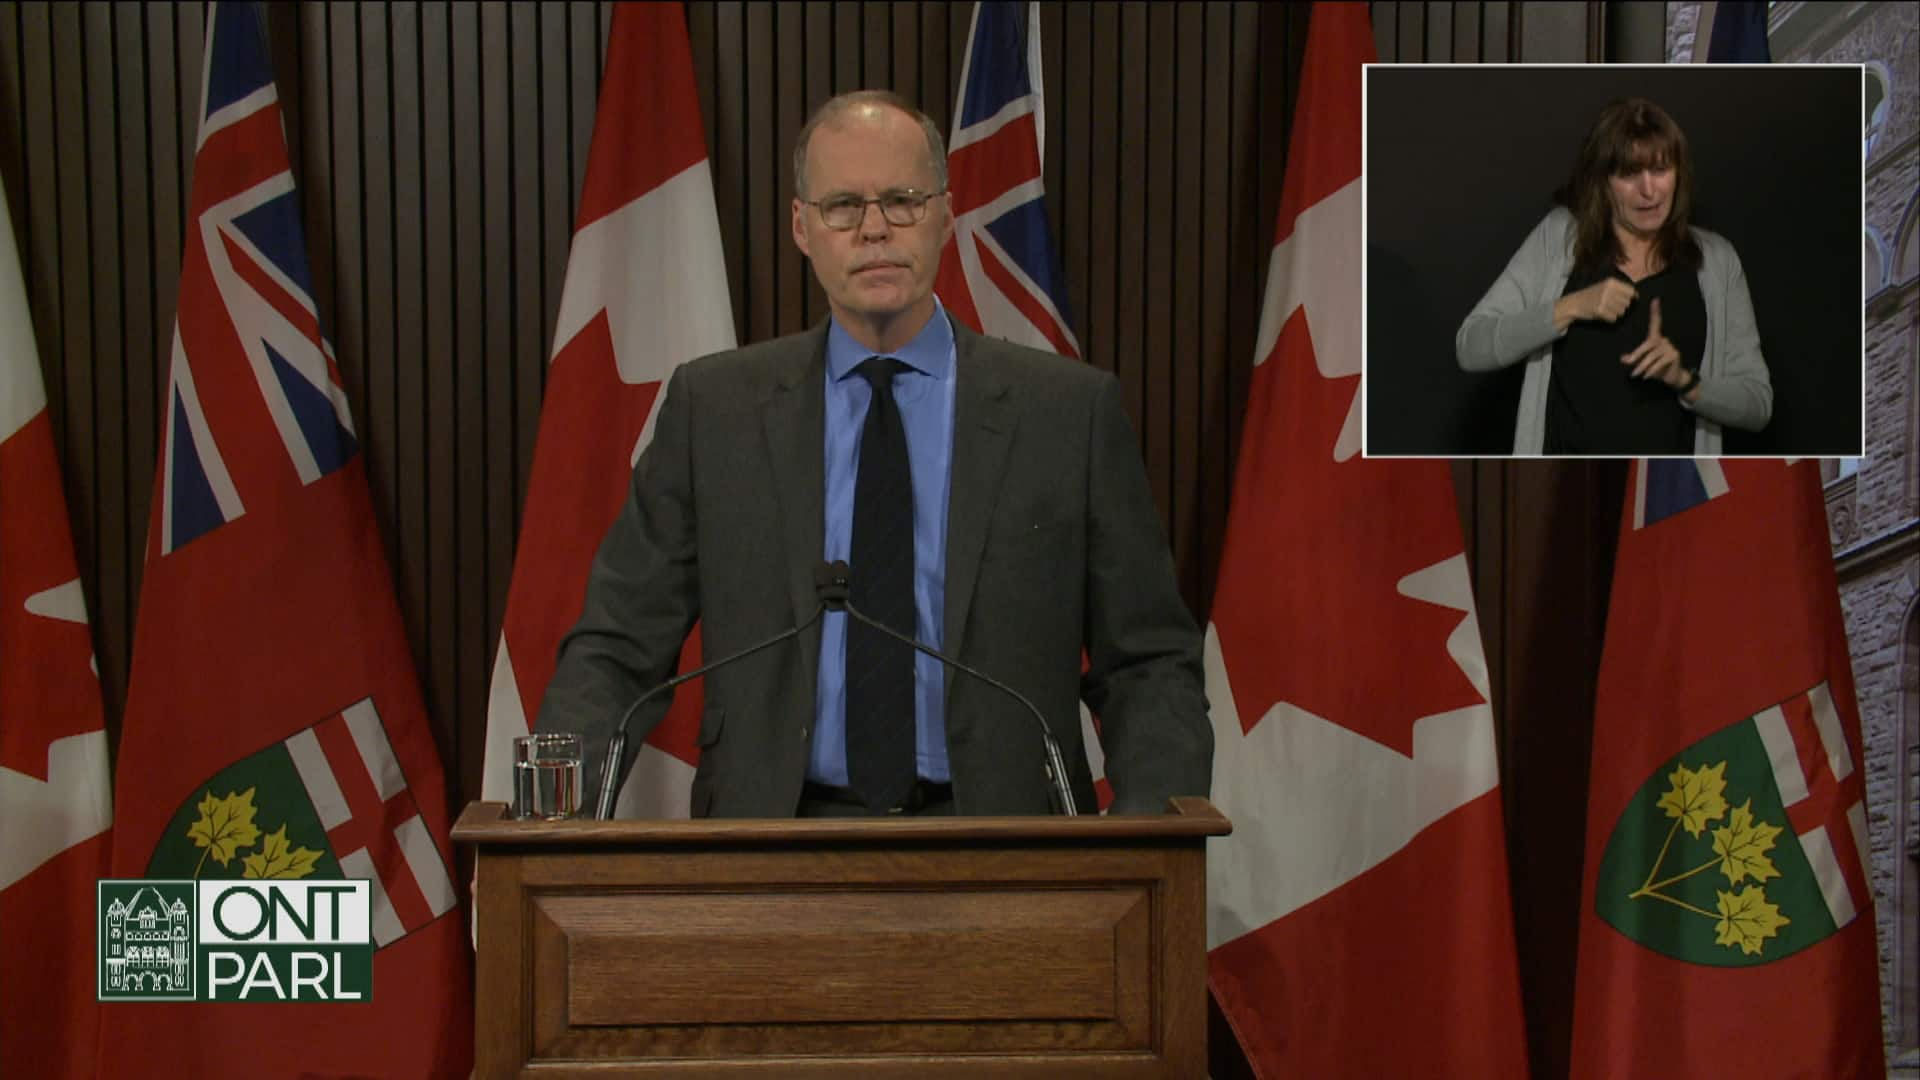 Ontario issues stay-at-home order as COVID-19 models show province is at 'dangerous point'